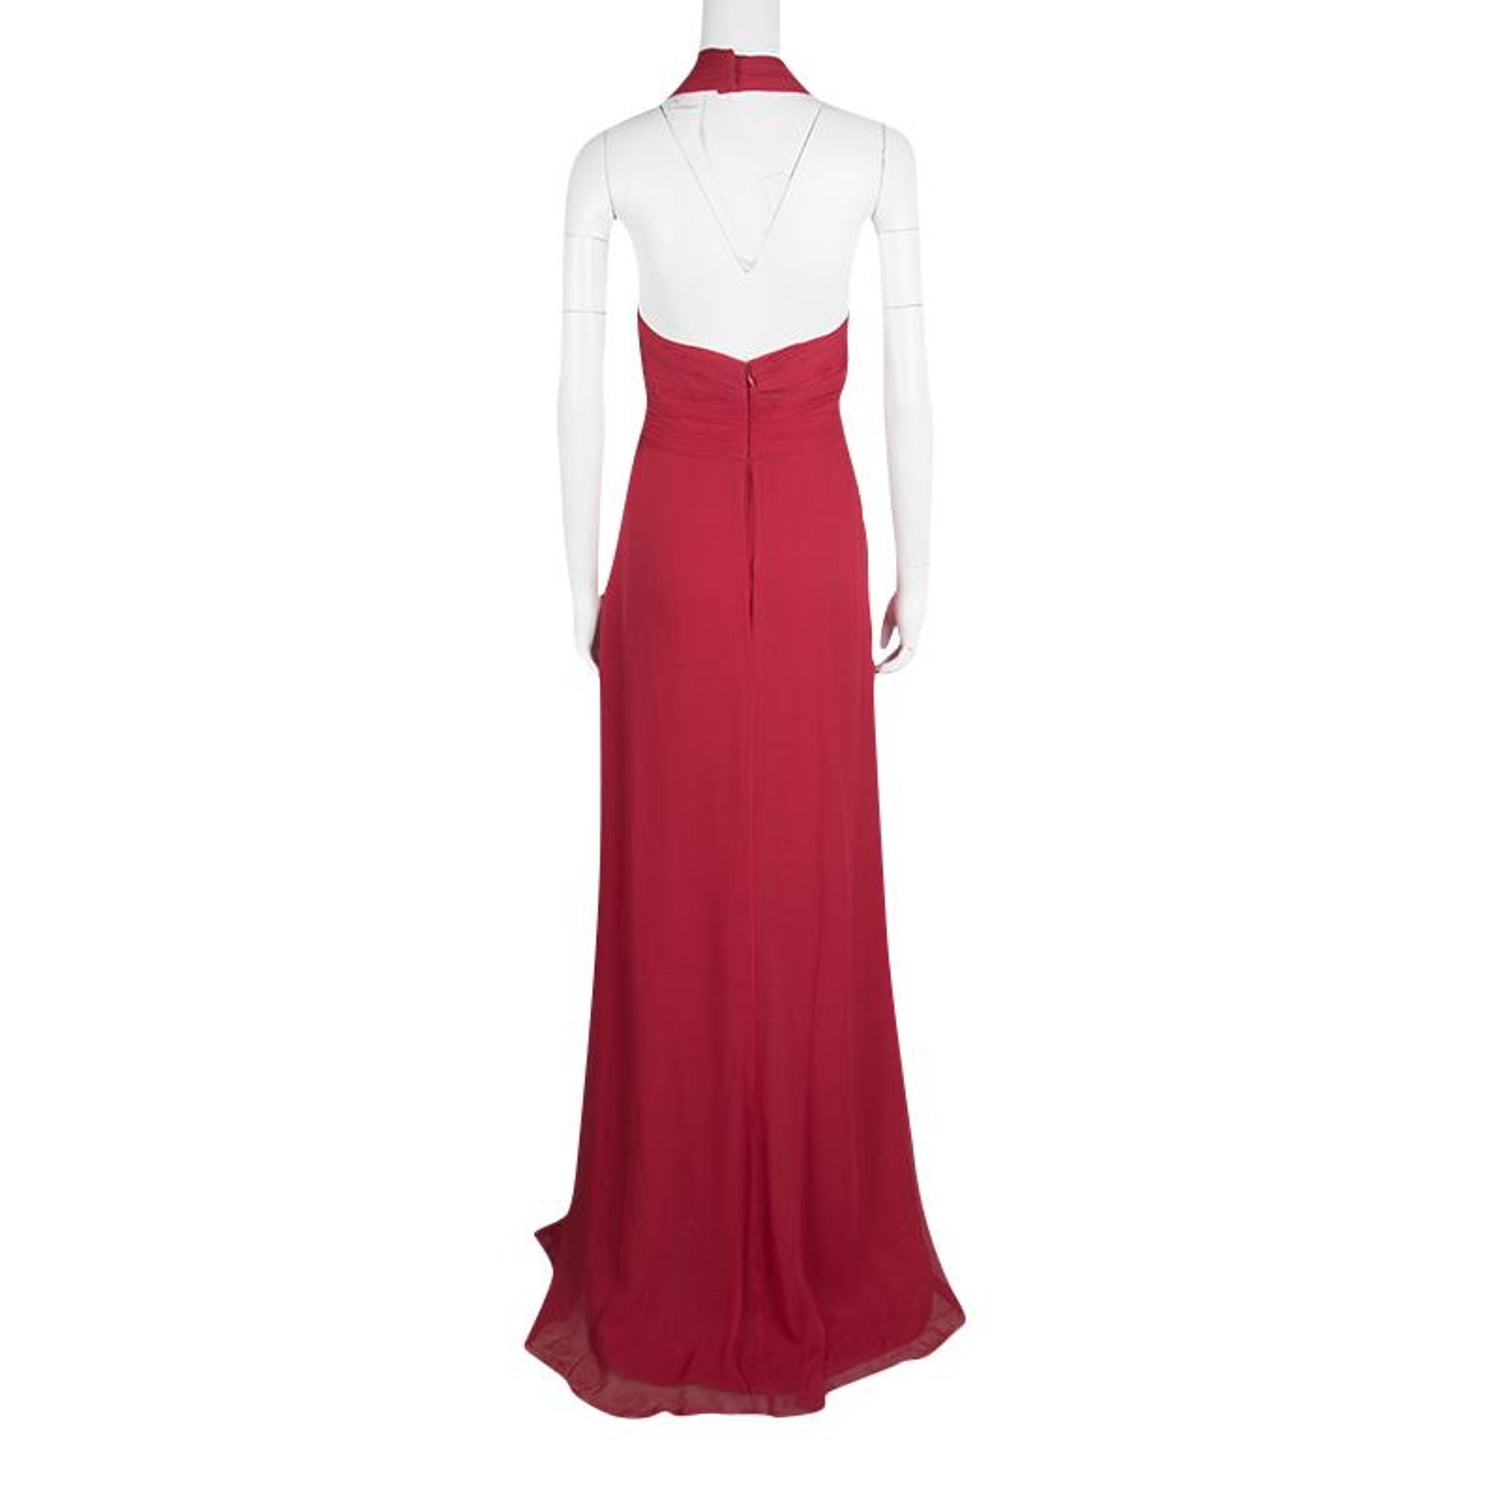 368f980824 Notte by Marchesa Red Silk Chiffon Halter Evening Gown L For Sale at 1stdibs